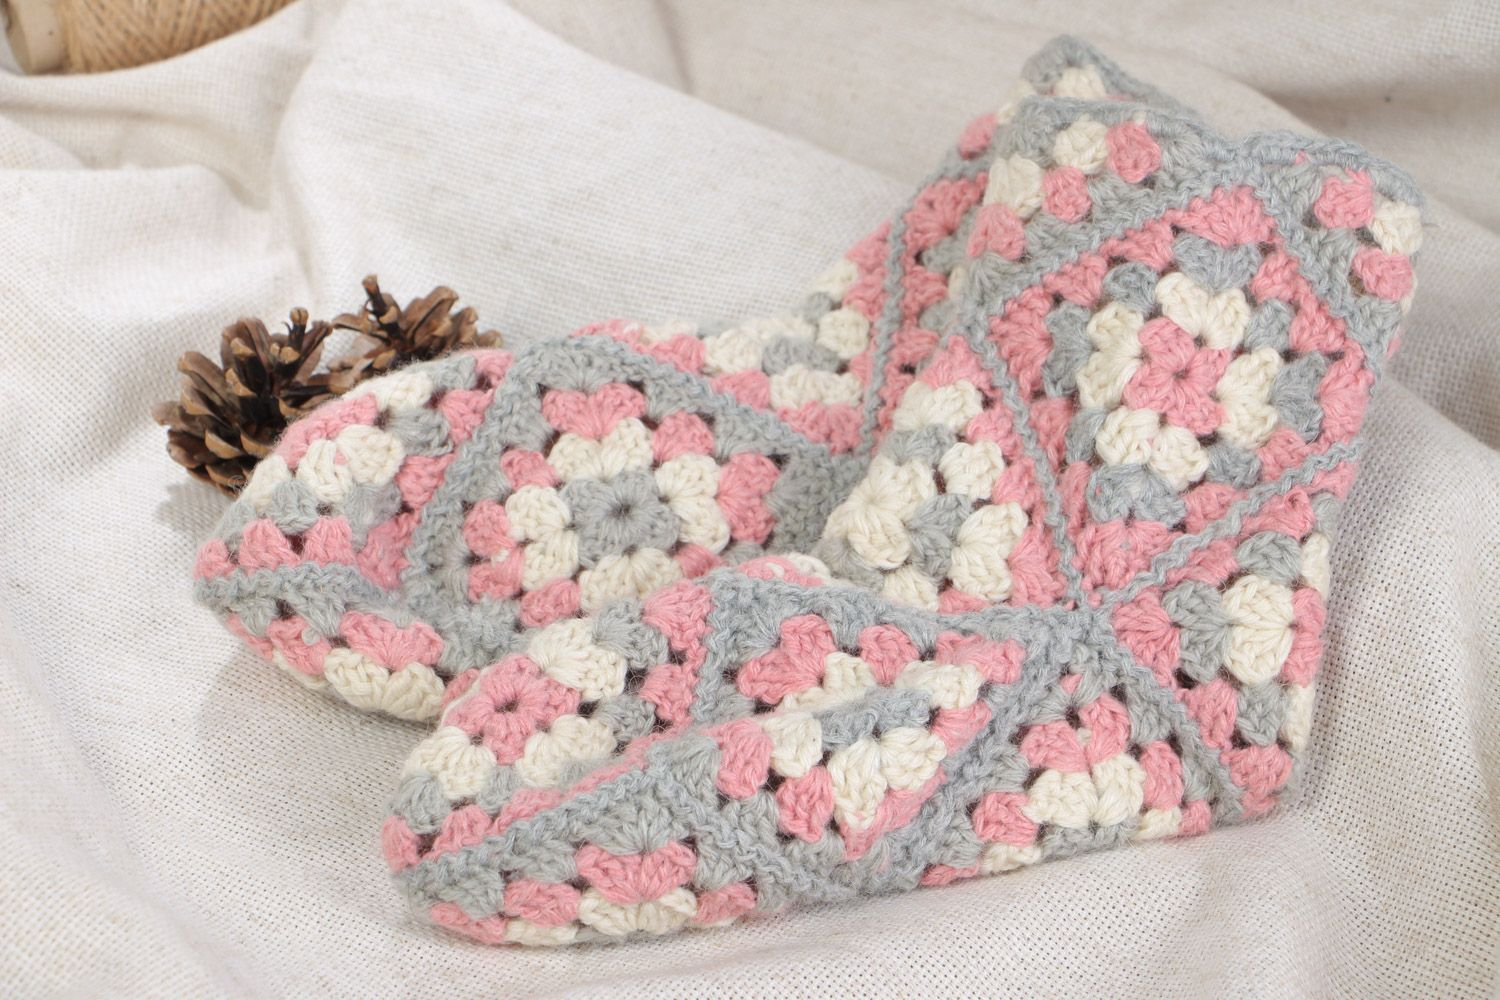 Handmade lace women's socks crocheted of woolen threads in tender colors 37-39 size photo 1